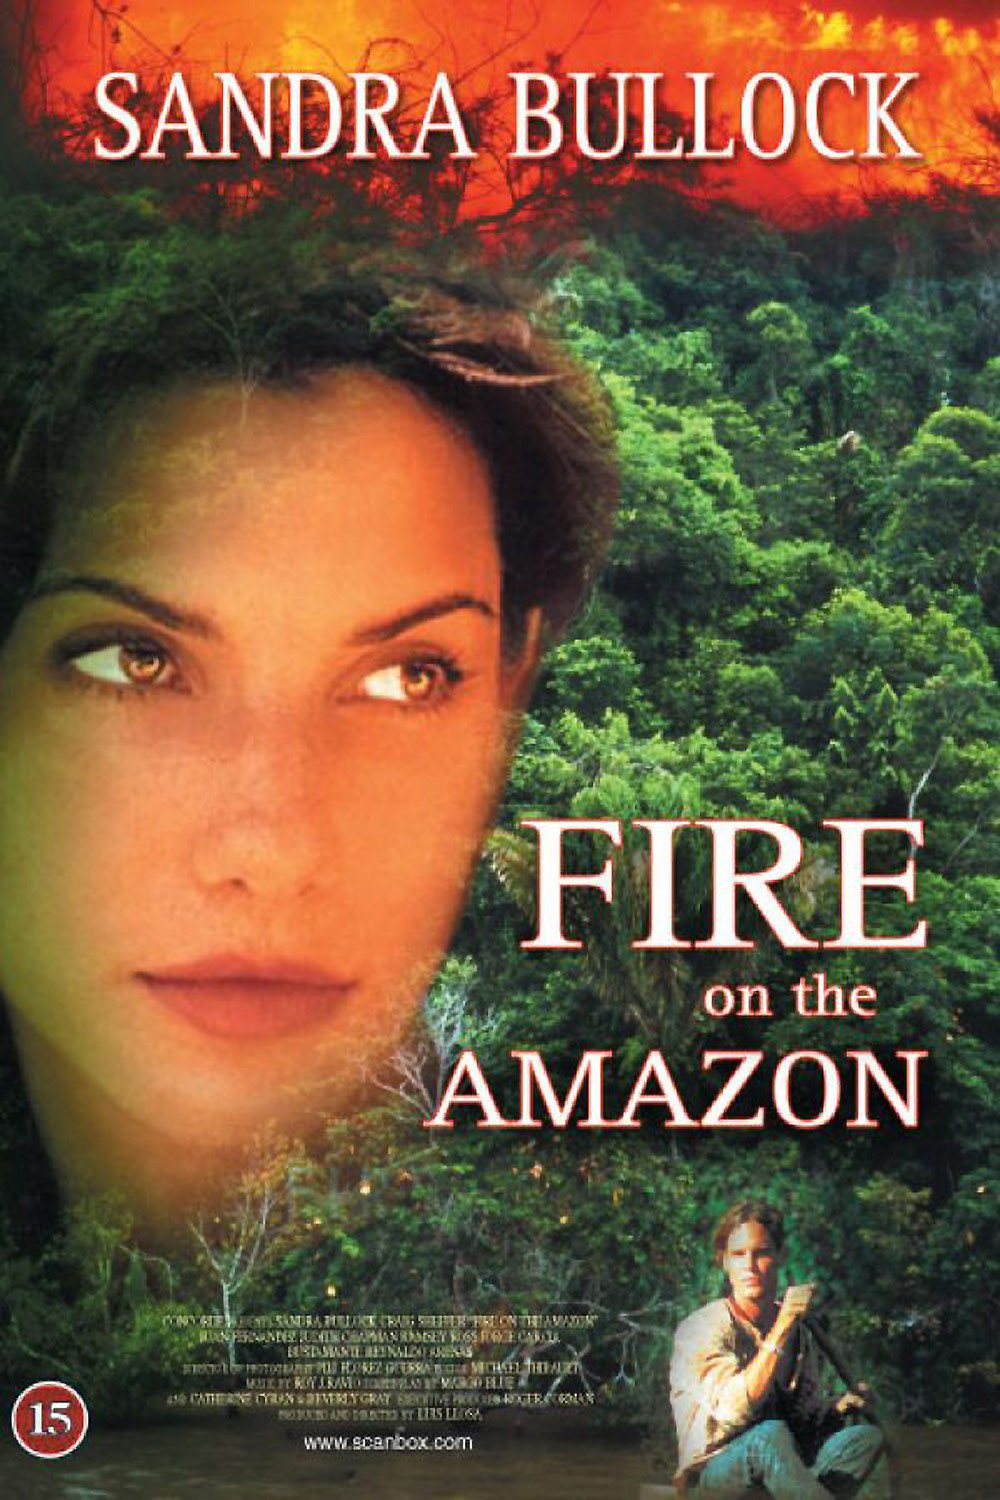 Sandra bullock fire on the amazon uncut erotic film